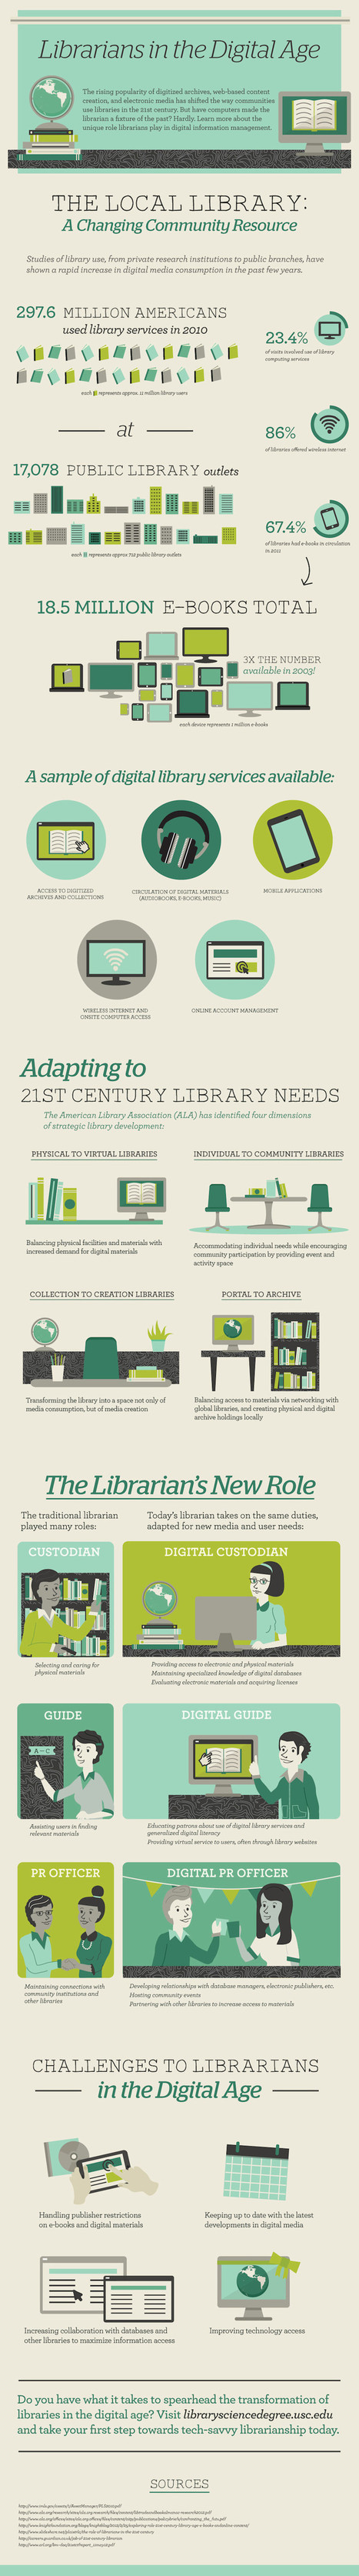 imgur: the simple image sharer | Books and Reading at Woodleigh | Scoop.it